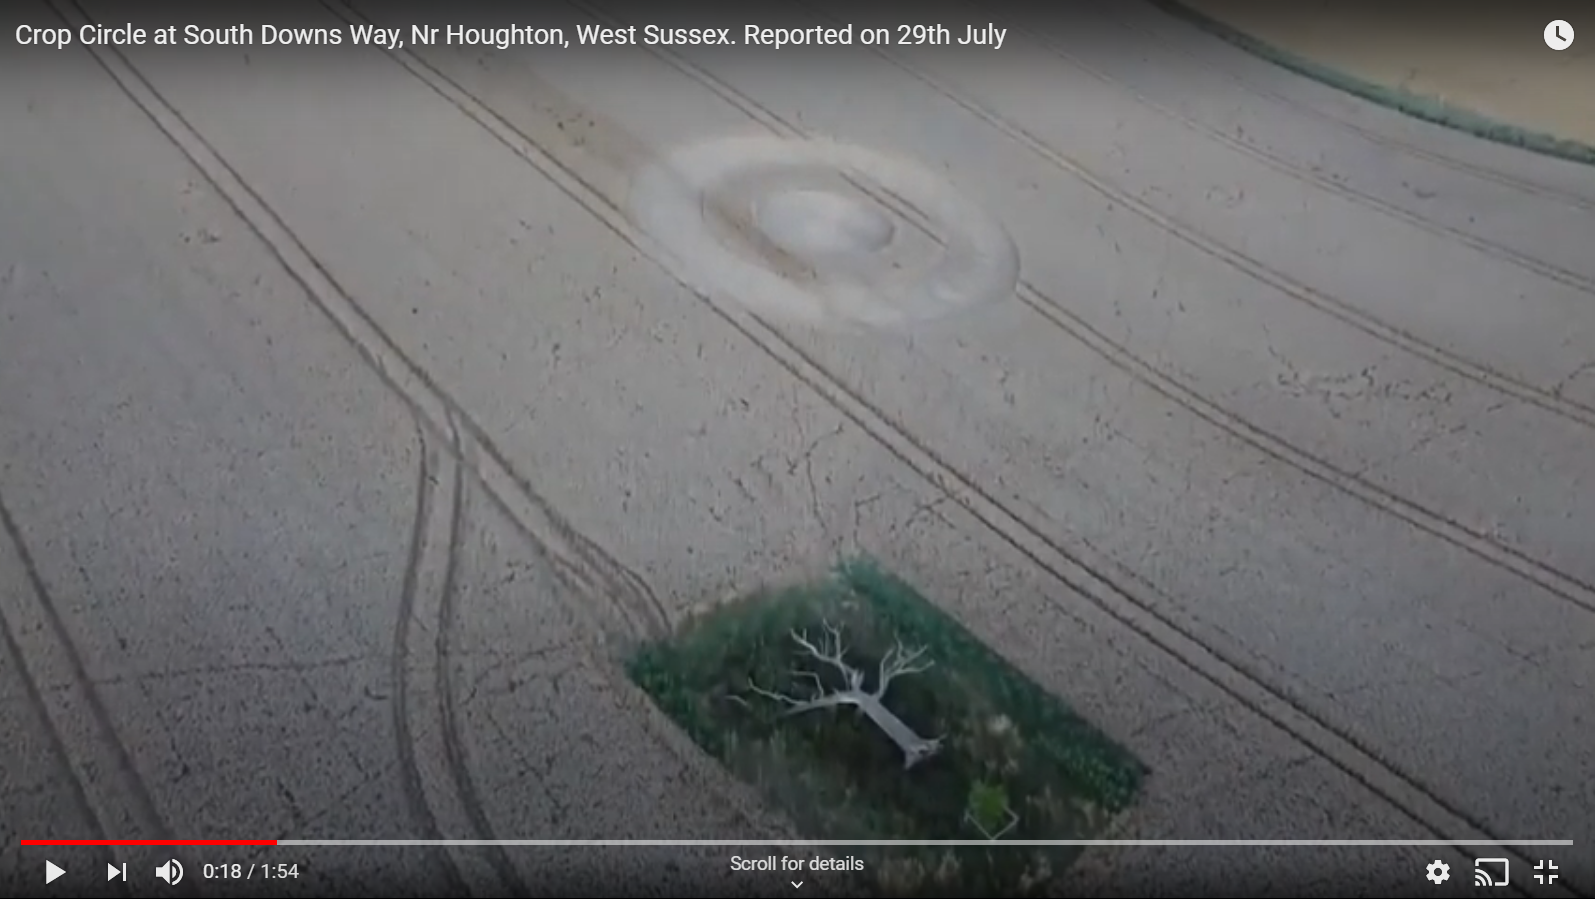 Houghton crop circle and tree